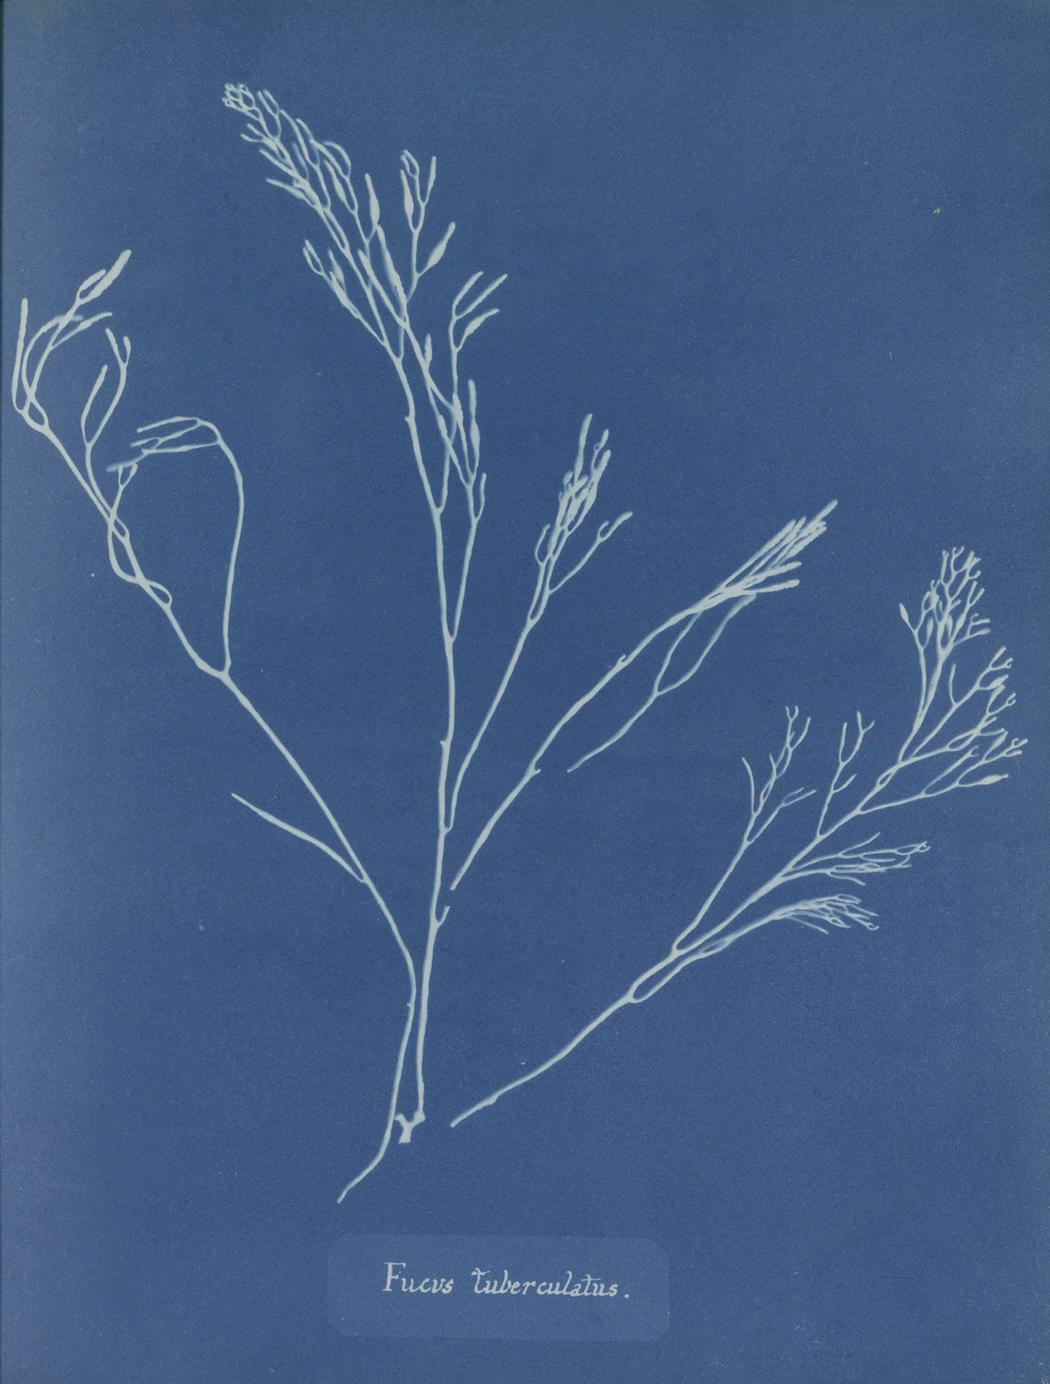 1495552511271 Anna Atkins Photographs of British Algae Cyanotype Impressions 1843 1853 RP F 2016 133 00 4 uitsnede p1bgqtgq7vjs91lcd1hou1gr41ch4